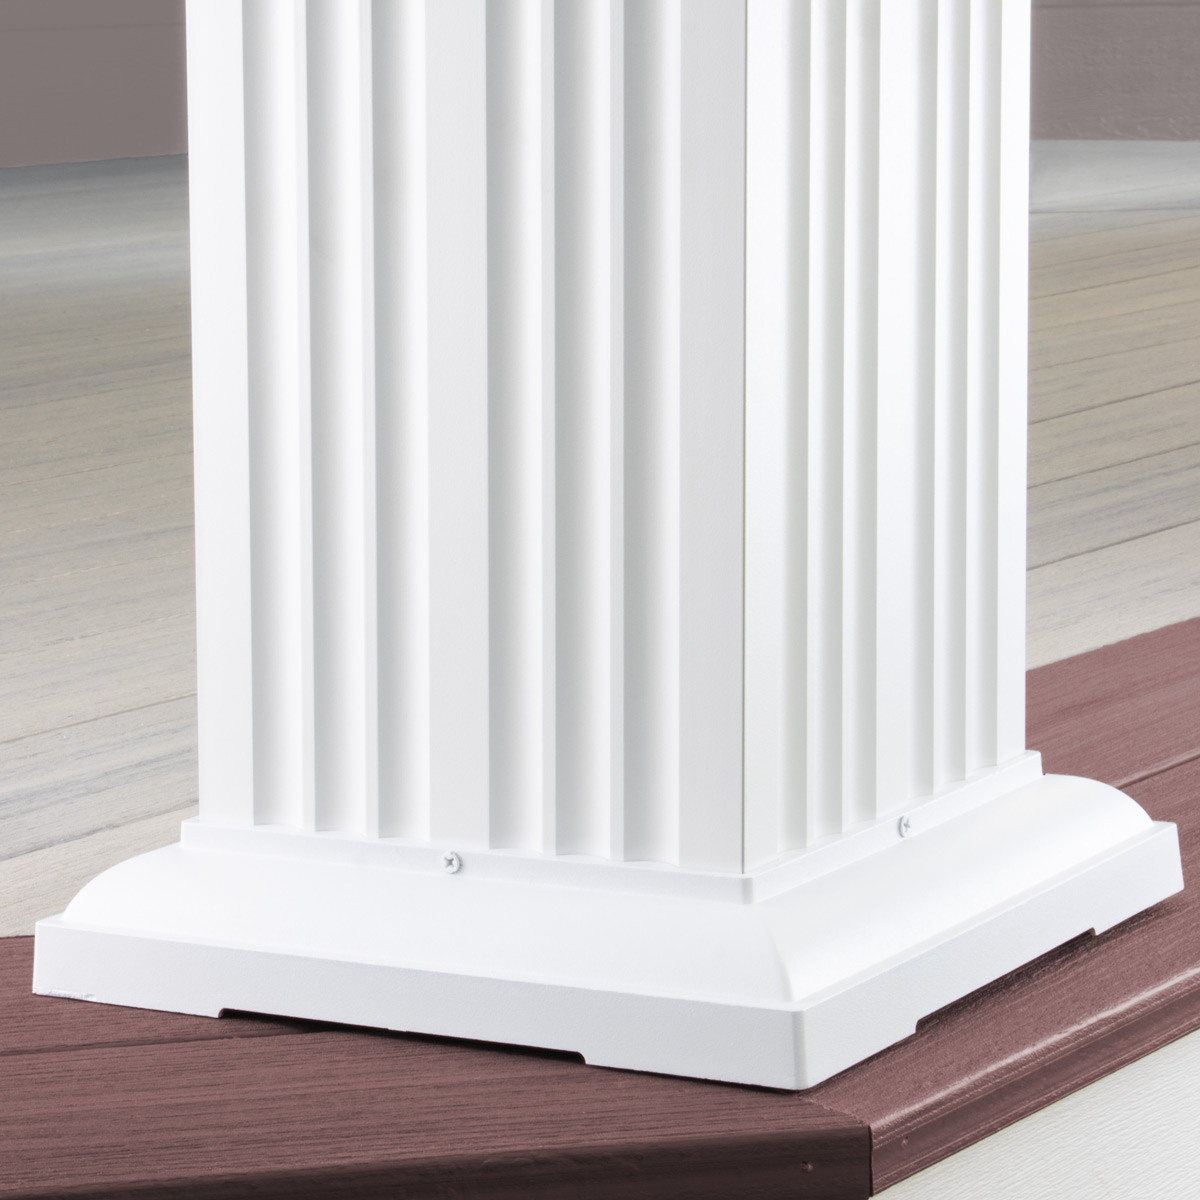 AFCO Square Fluted Aluminum Column Post Kits - Installed